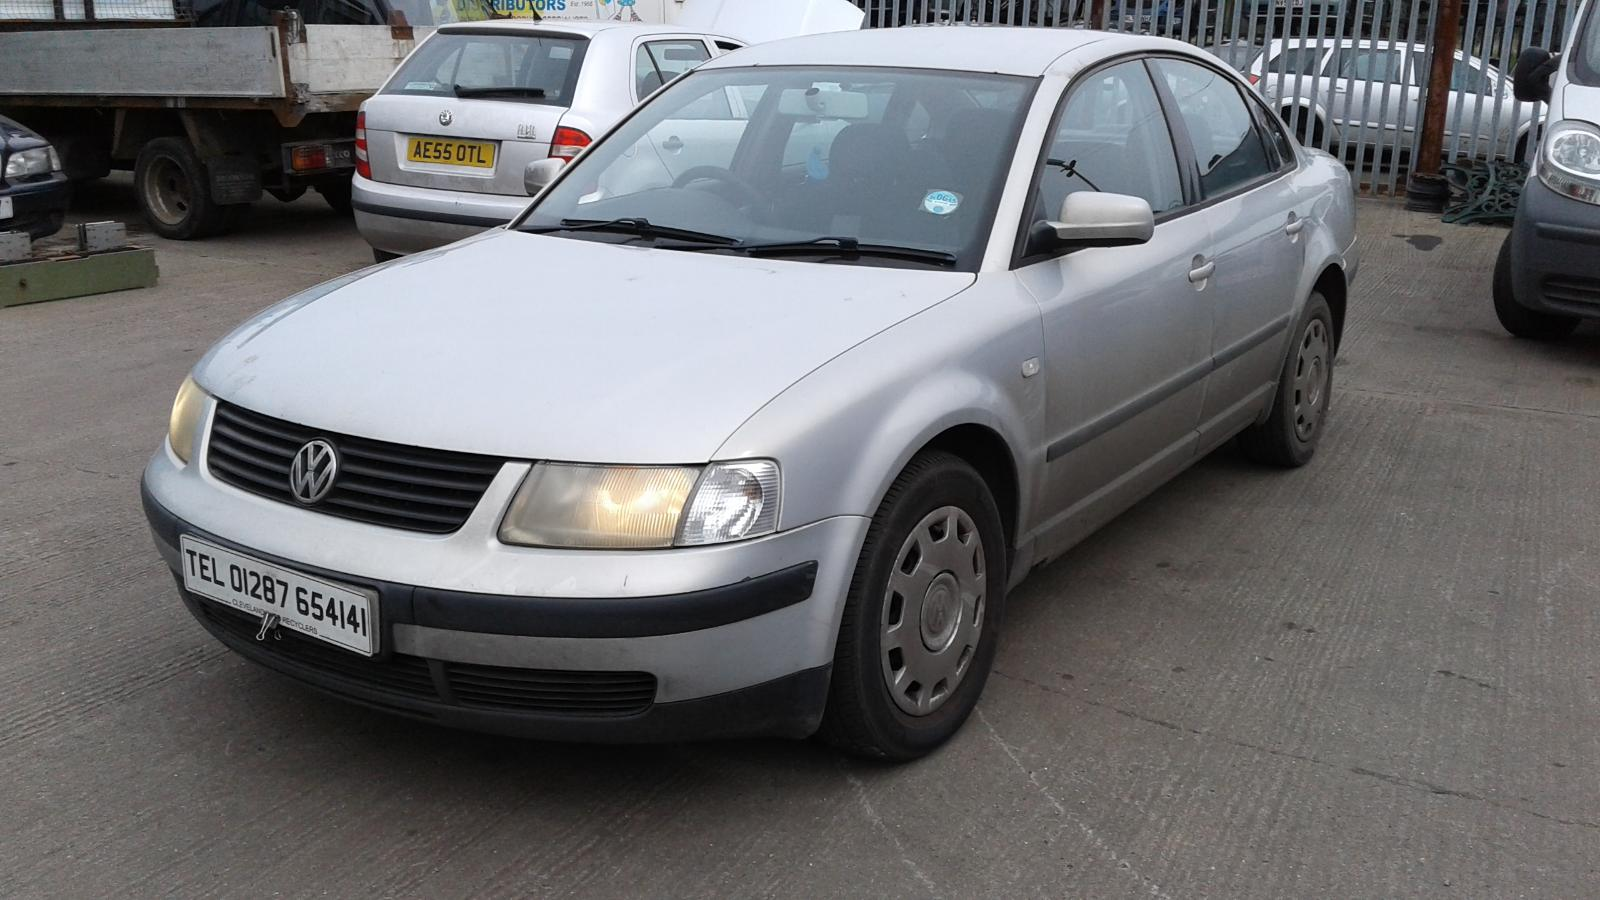 2000 vw passat mk4 b5 1 9 tdi diesel 8v pd115 atj bare engine breaking. Black Bedroom Furniture Sets. Home Design Ideas